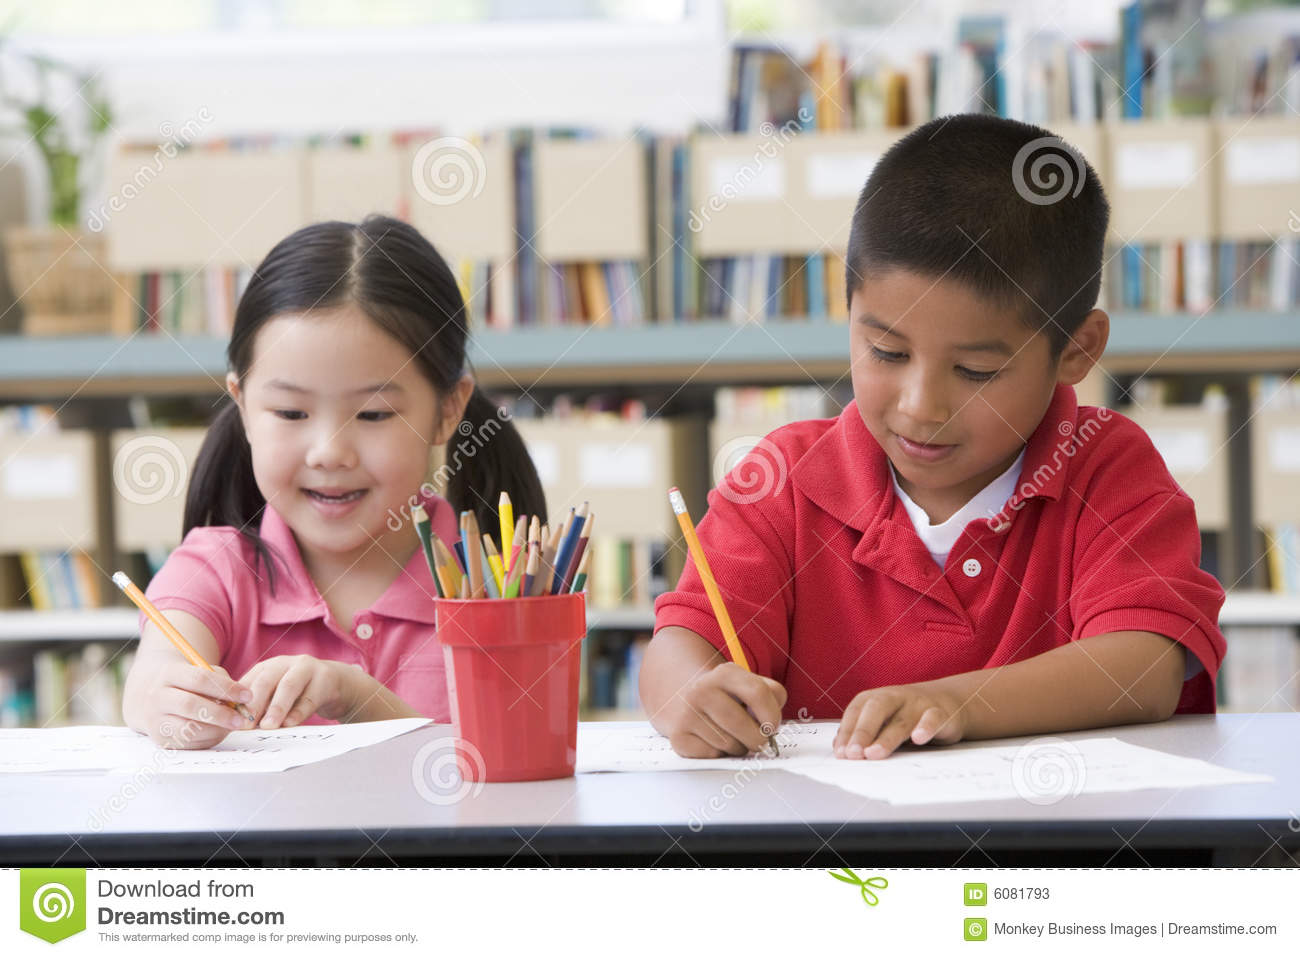 Elementary Classrooms Writing : Children sitting at desk and writing in classroom stock